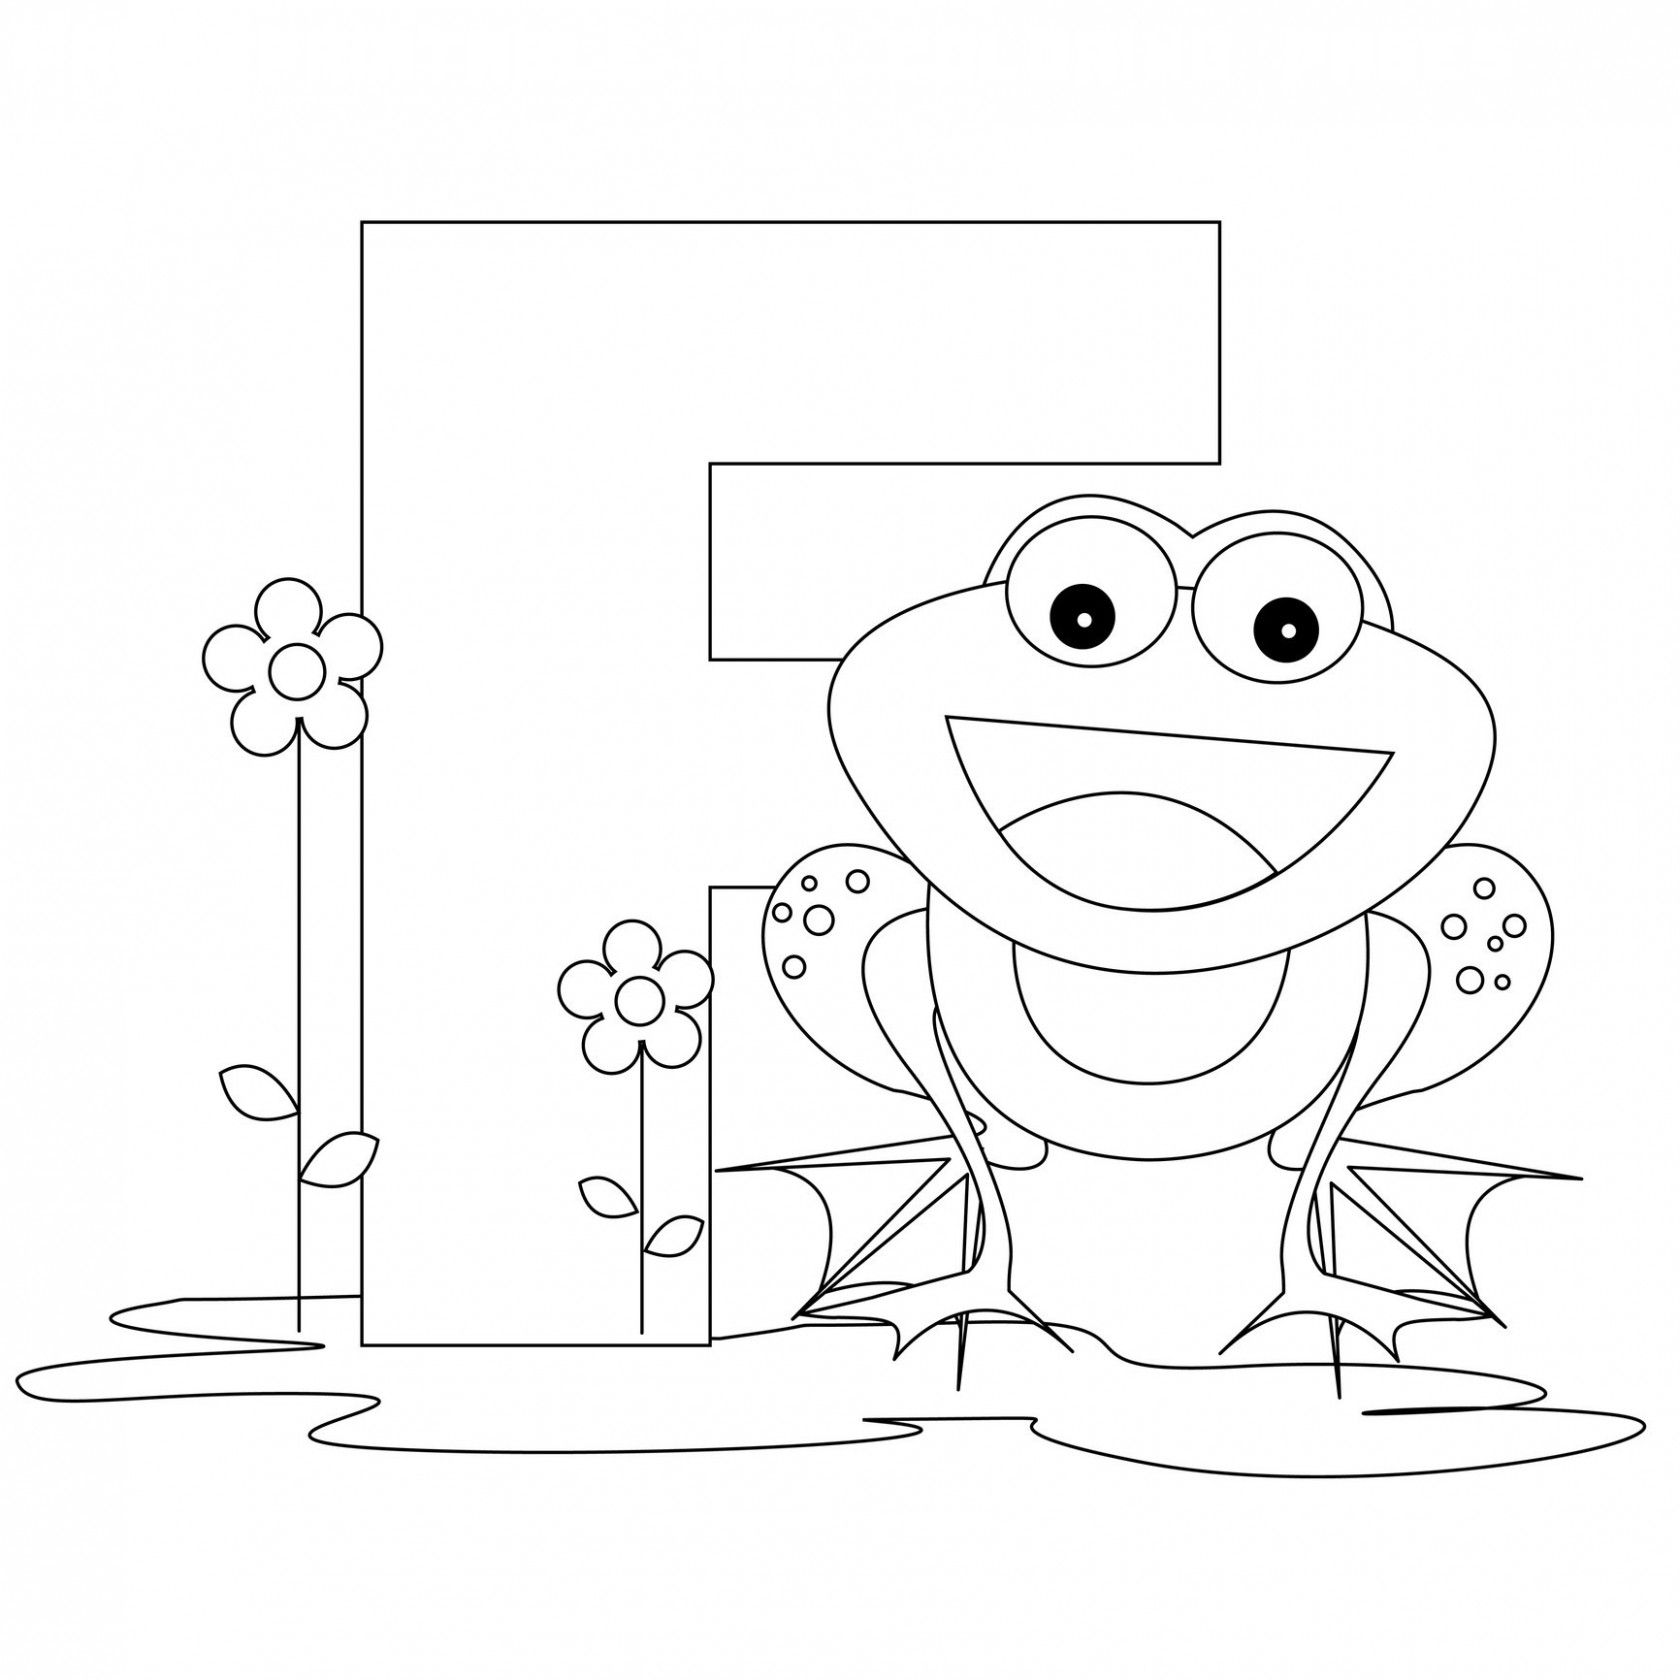 9 Free Printable Abc Coloring Pages In 2020 Alphabet Coloring Pages Kindergarten Coloring Pages Abc Coloring Pages